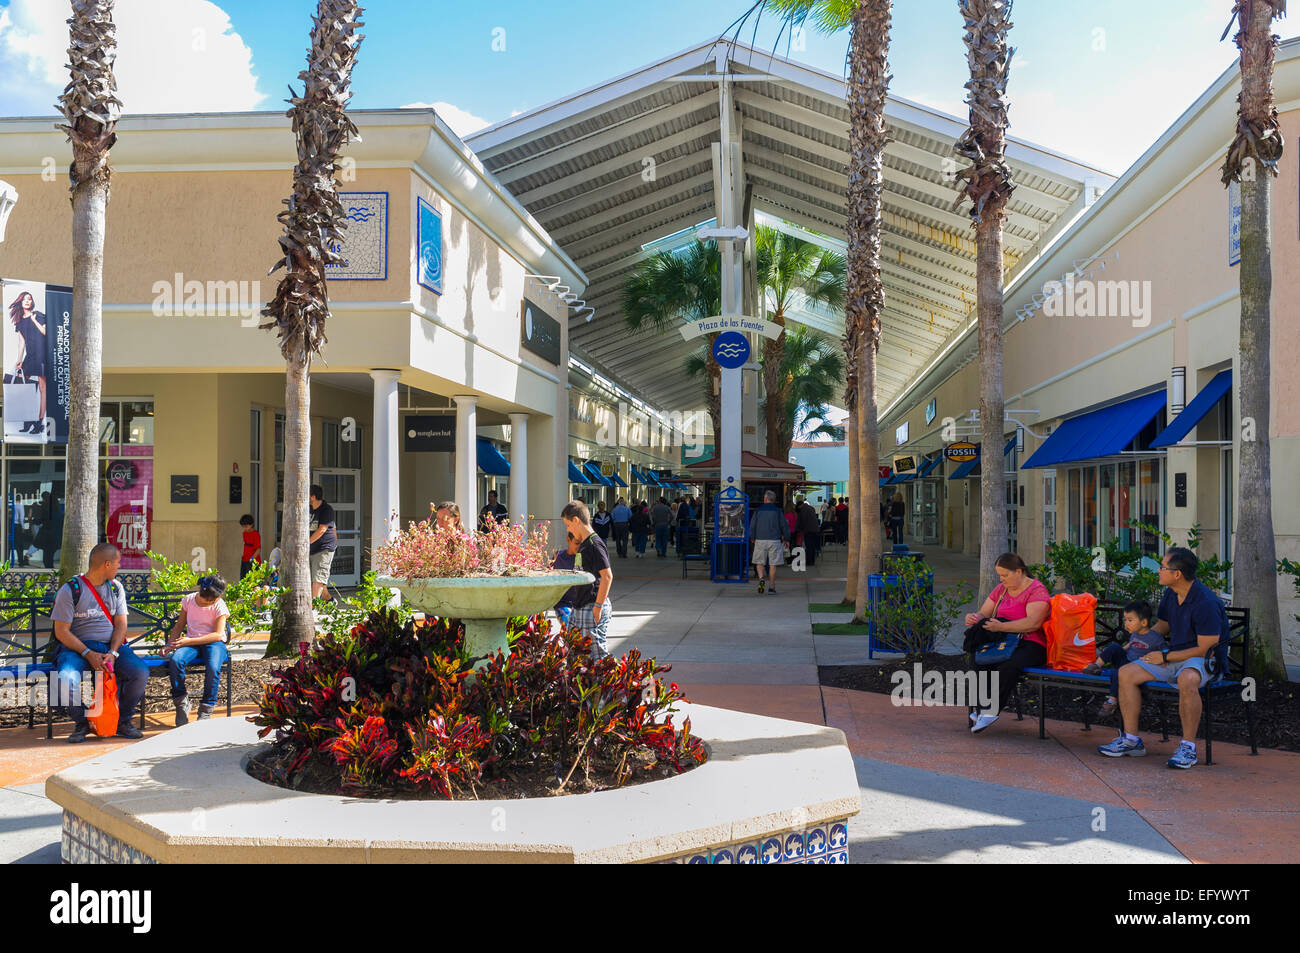 9bb166b62 Shoppers outside at the Orlando International Premium Outlets shopping Mall